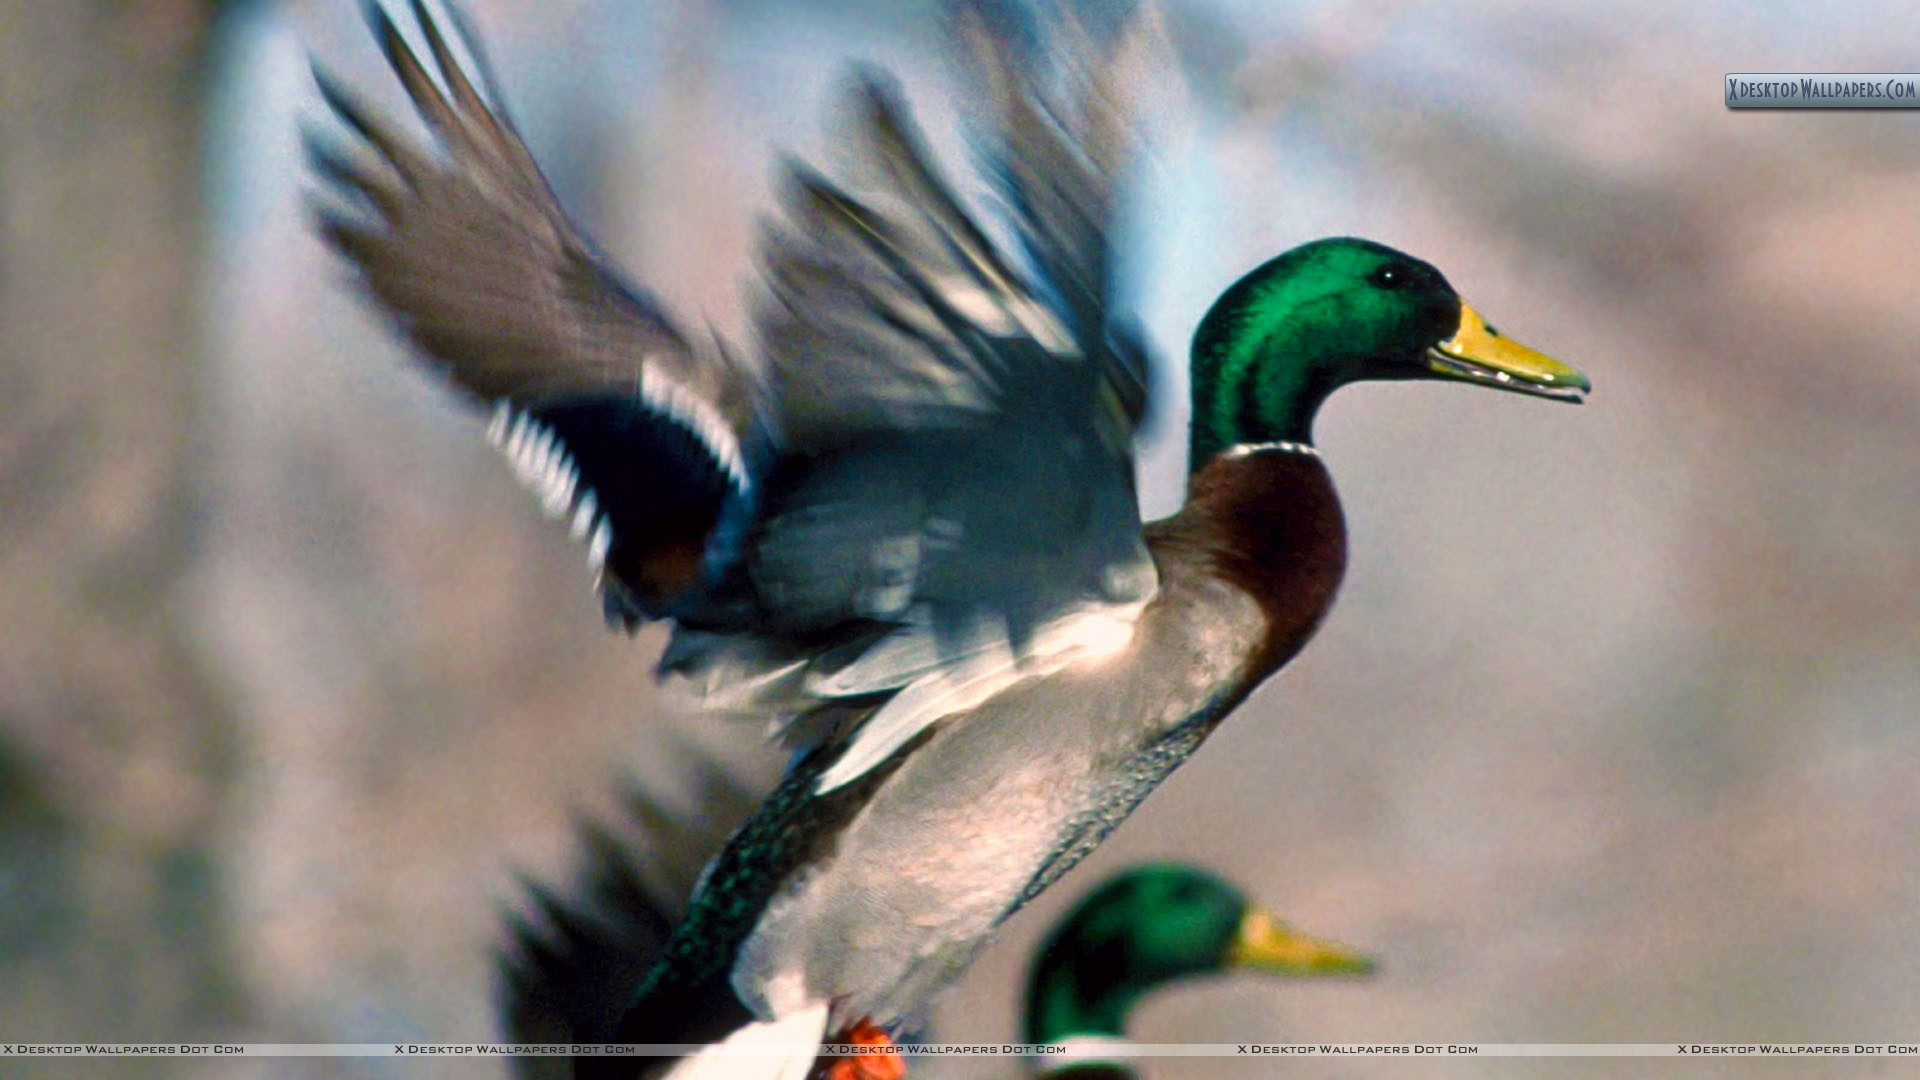 Ducks Unlimited Wallpapers   1920x1080